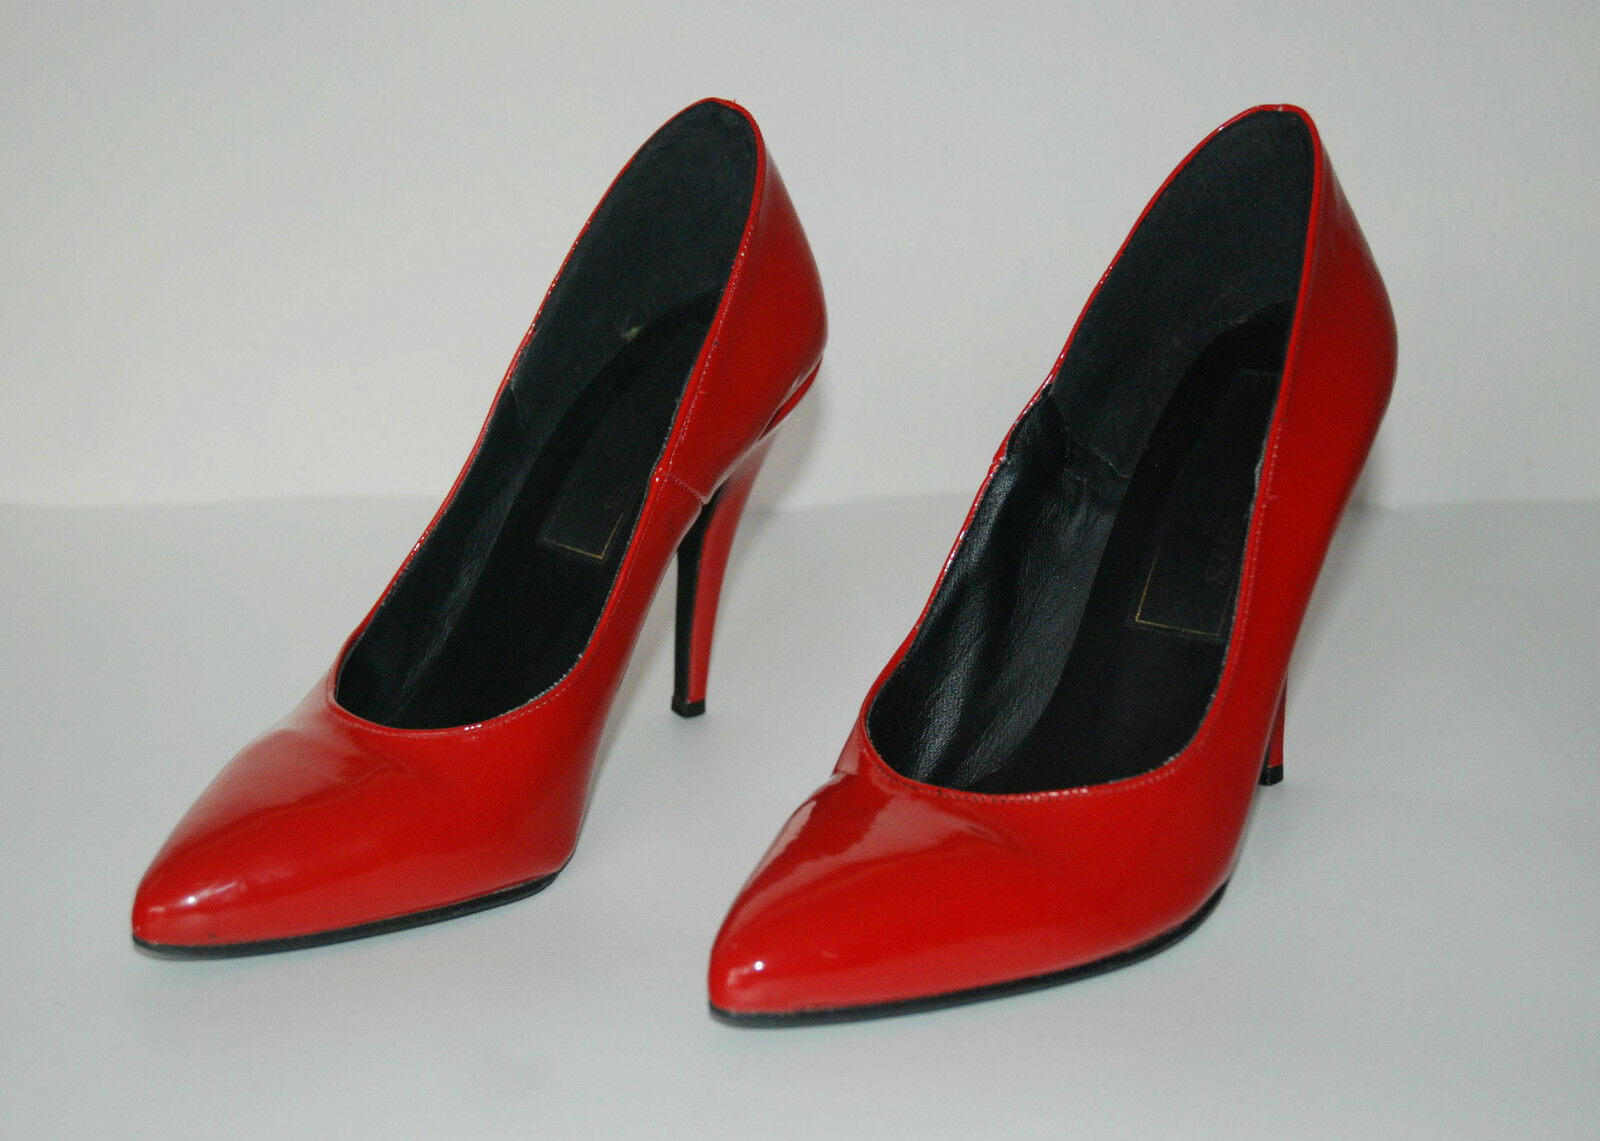 vtg ROT PATENT LEATHER high heels pumps UK6